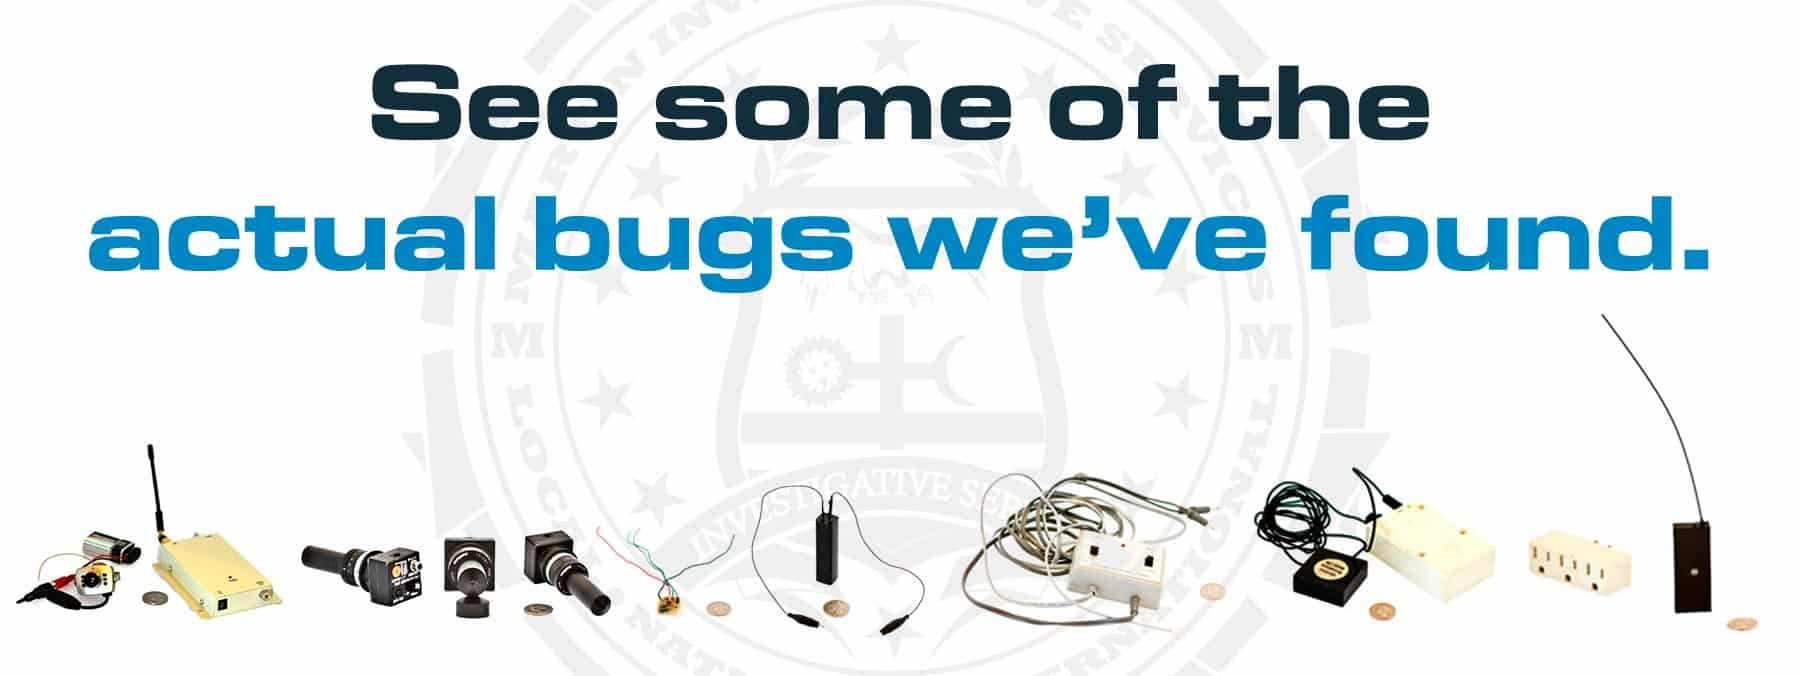 Bug sweep services from Martin Investigative Services